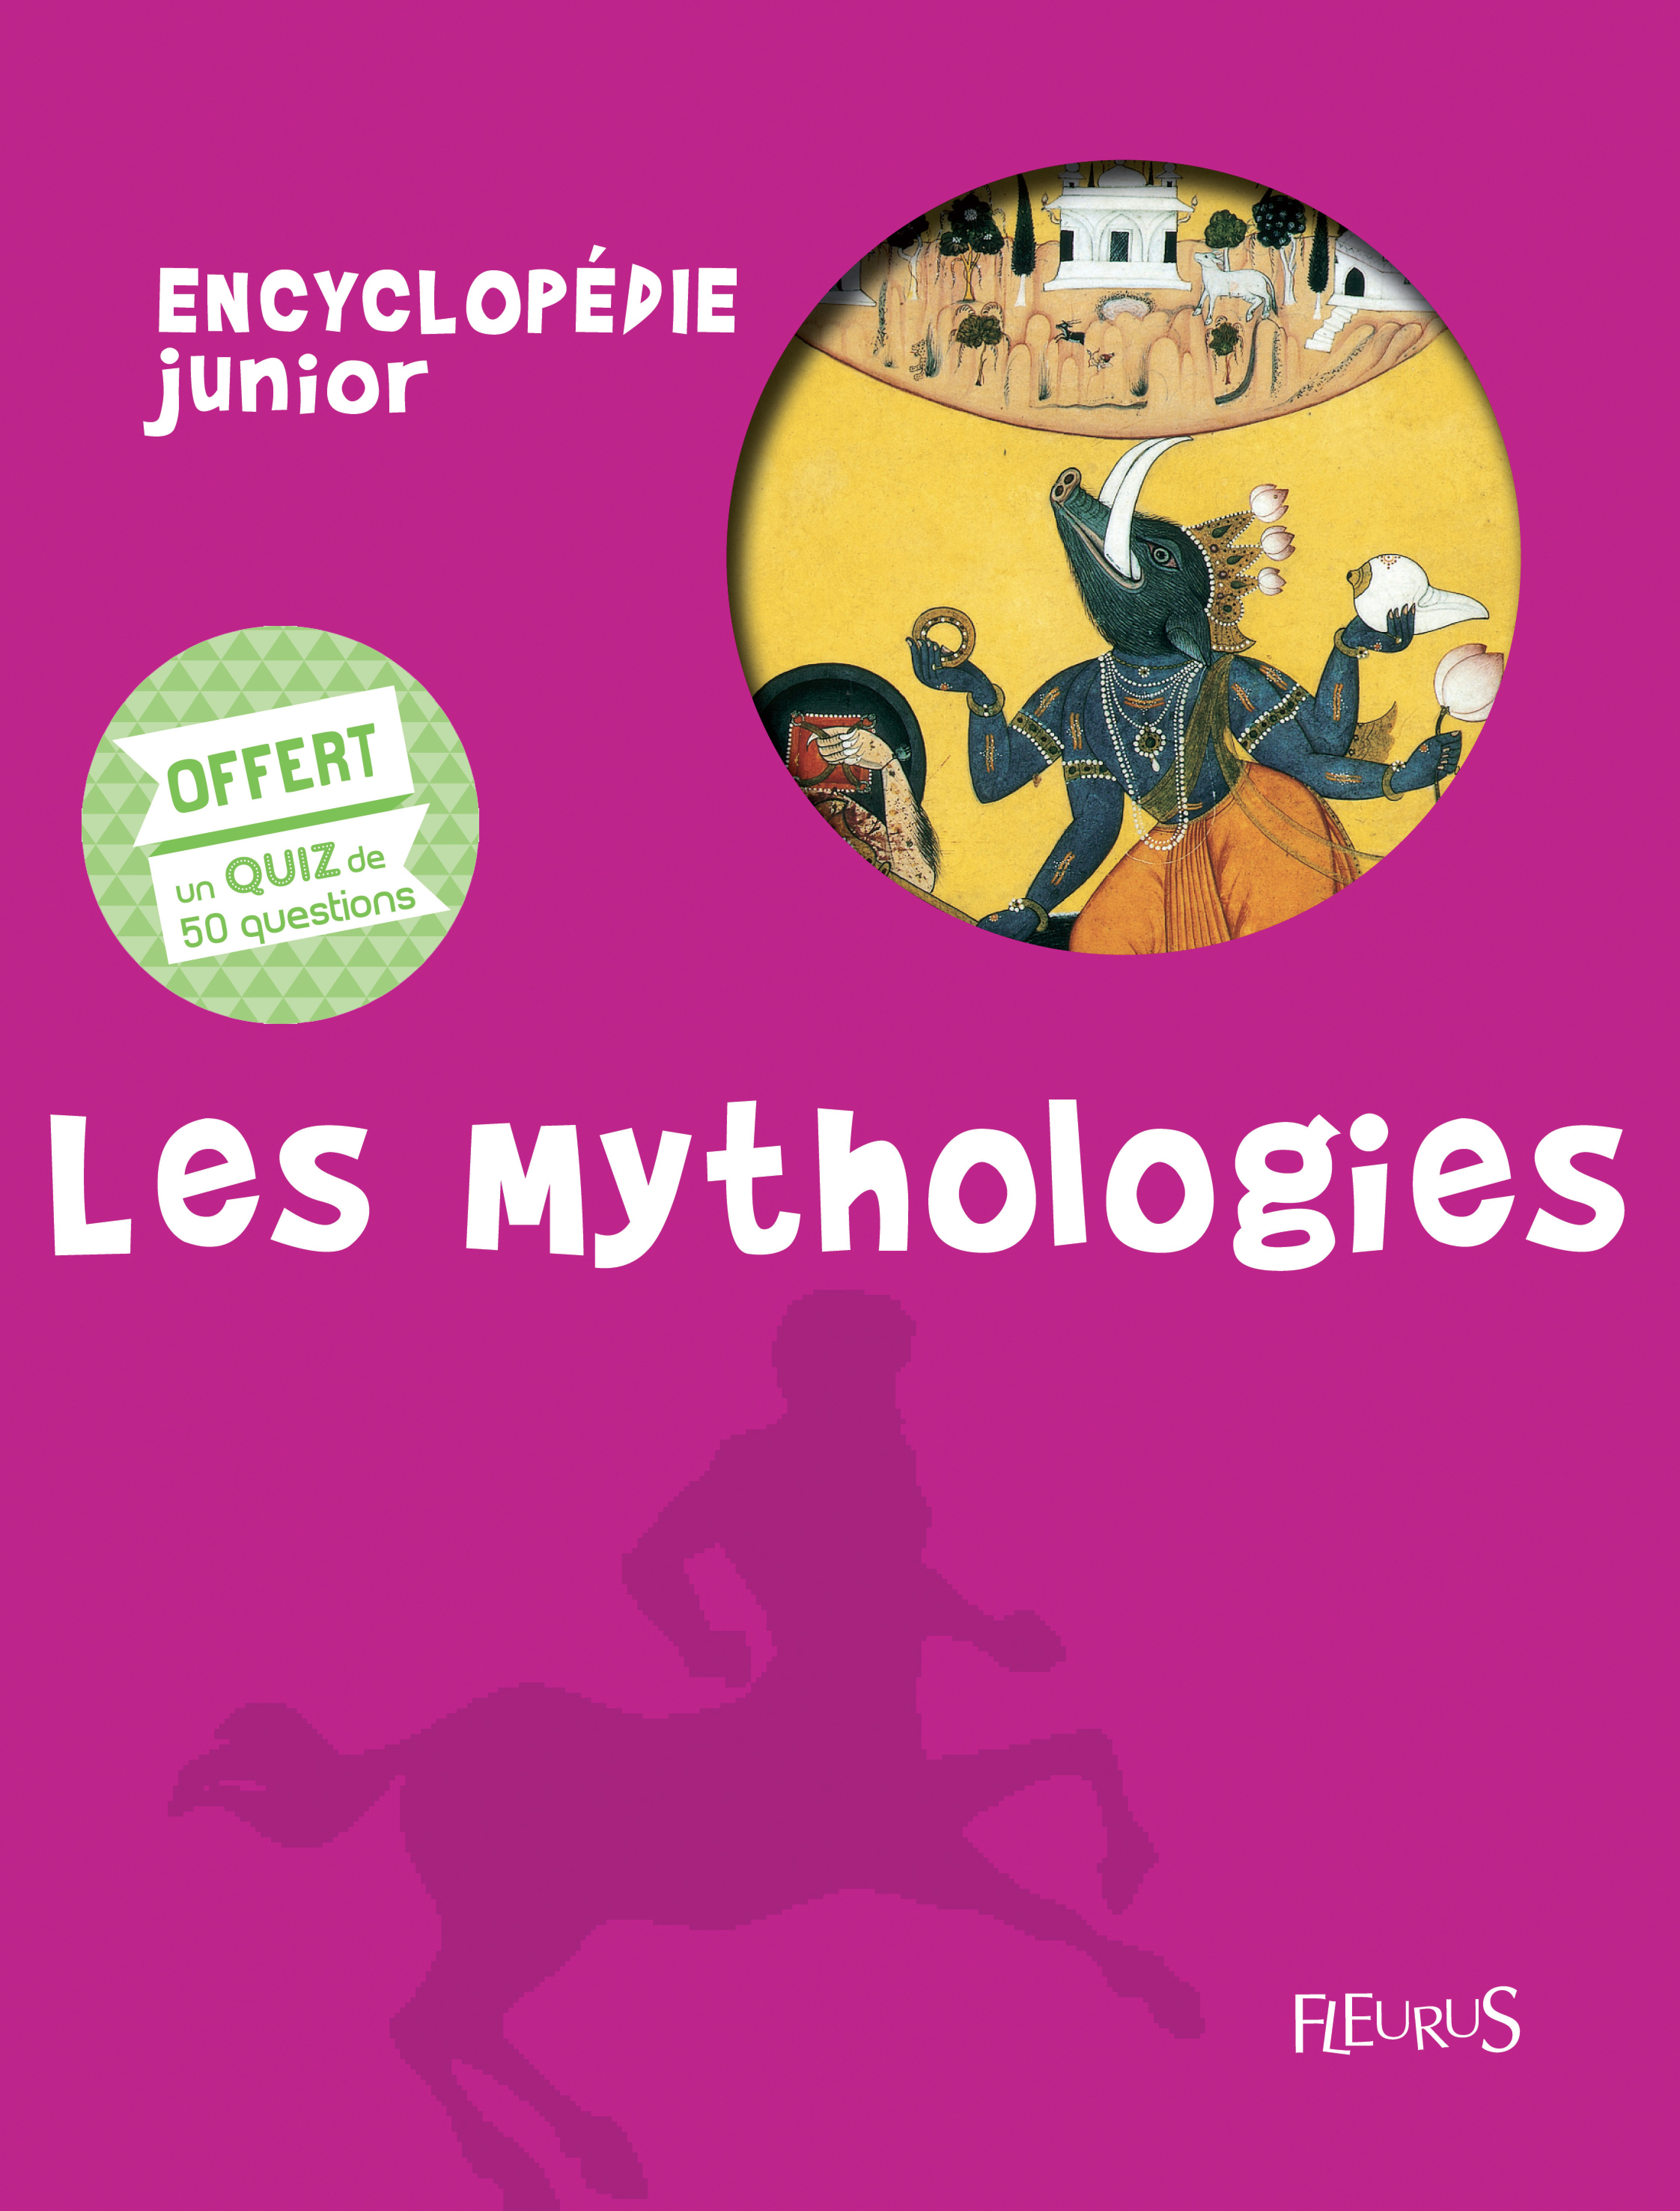 MYTHOLOGIES - ENCYCLO + QUIZ